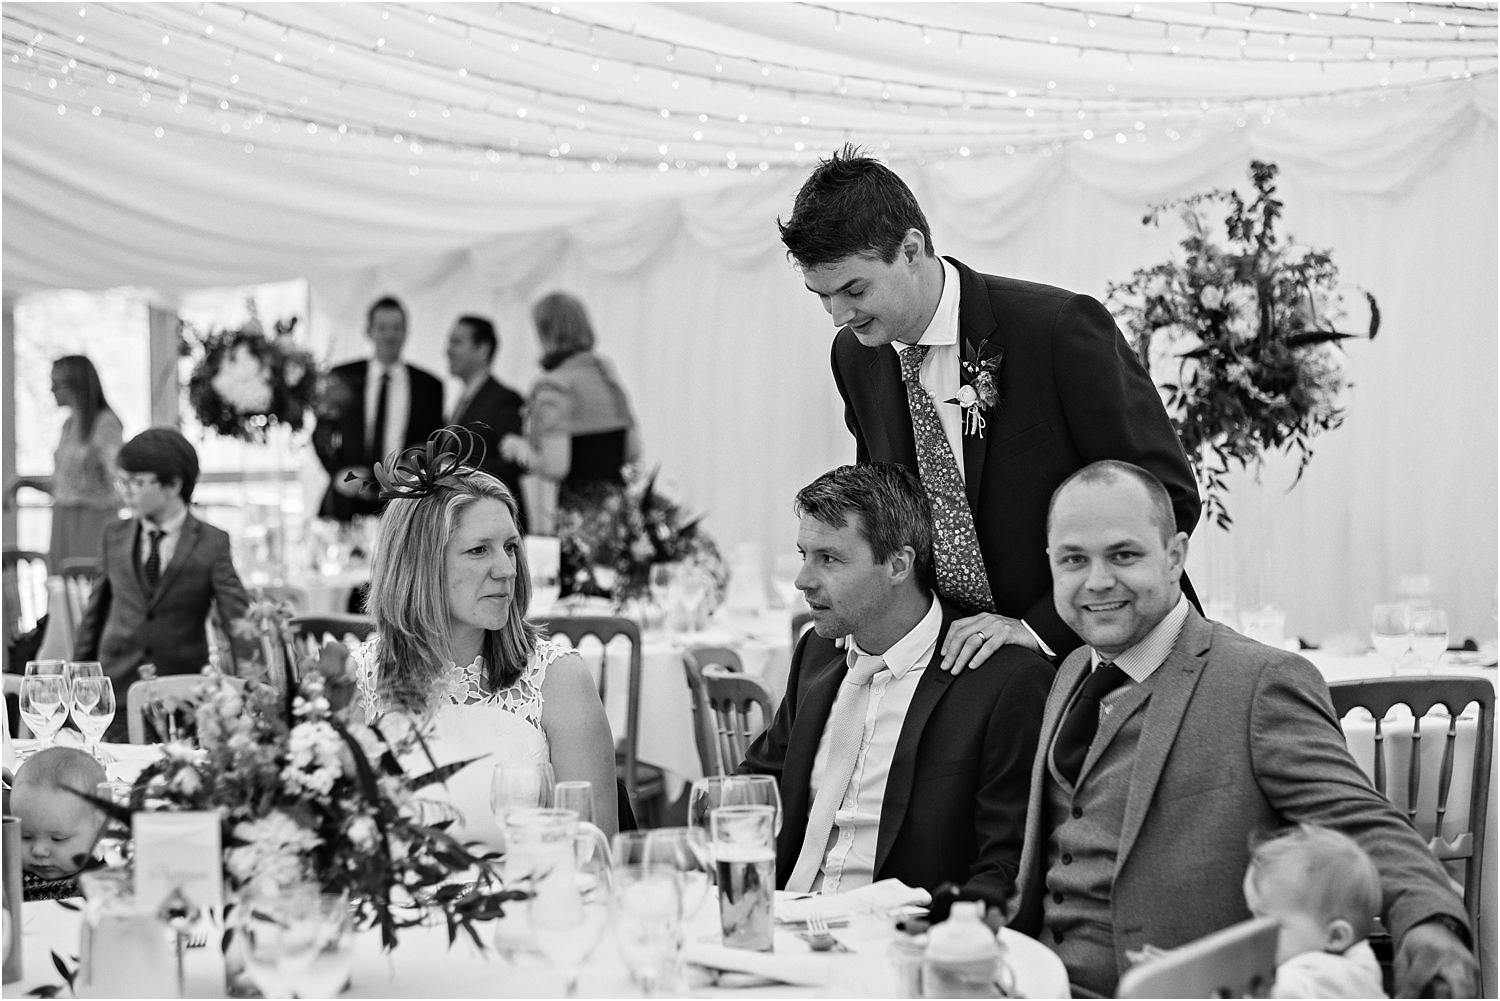 Guests getting seated at wedding reception at the Inn at Whitewell